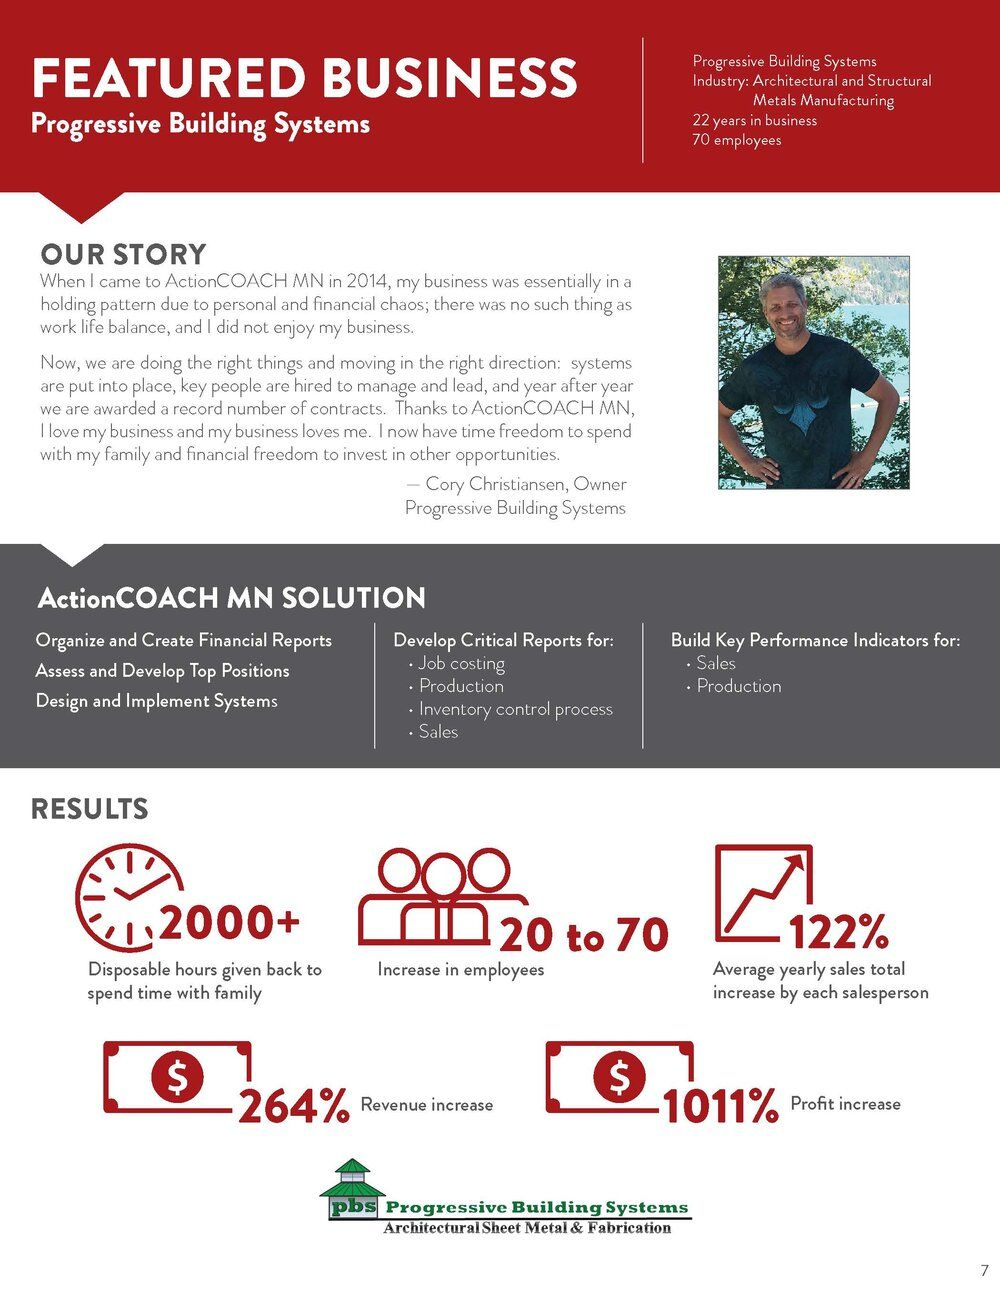 ActionCOACH+MN+Featured+Business+-+Progressive+Building+Systems+-+Success+Results+help.jpg